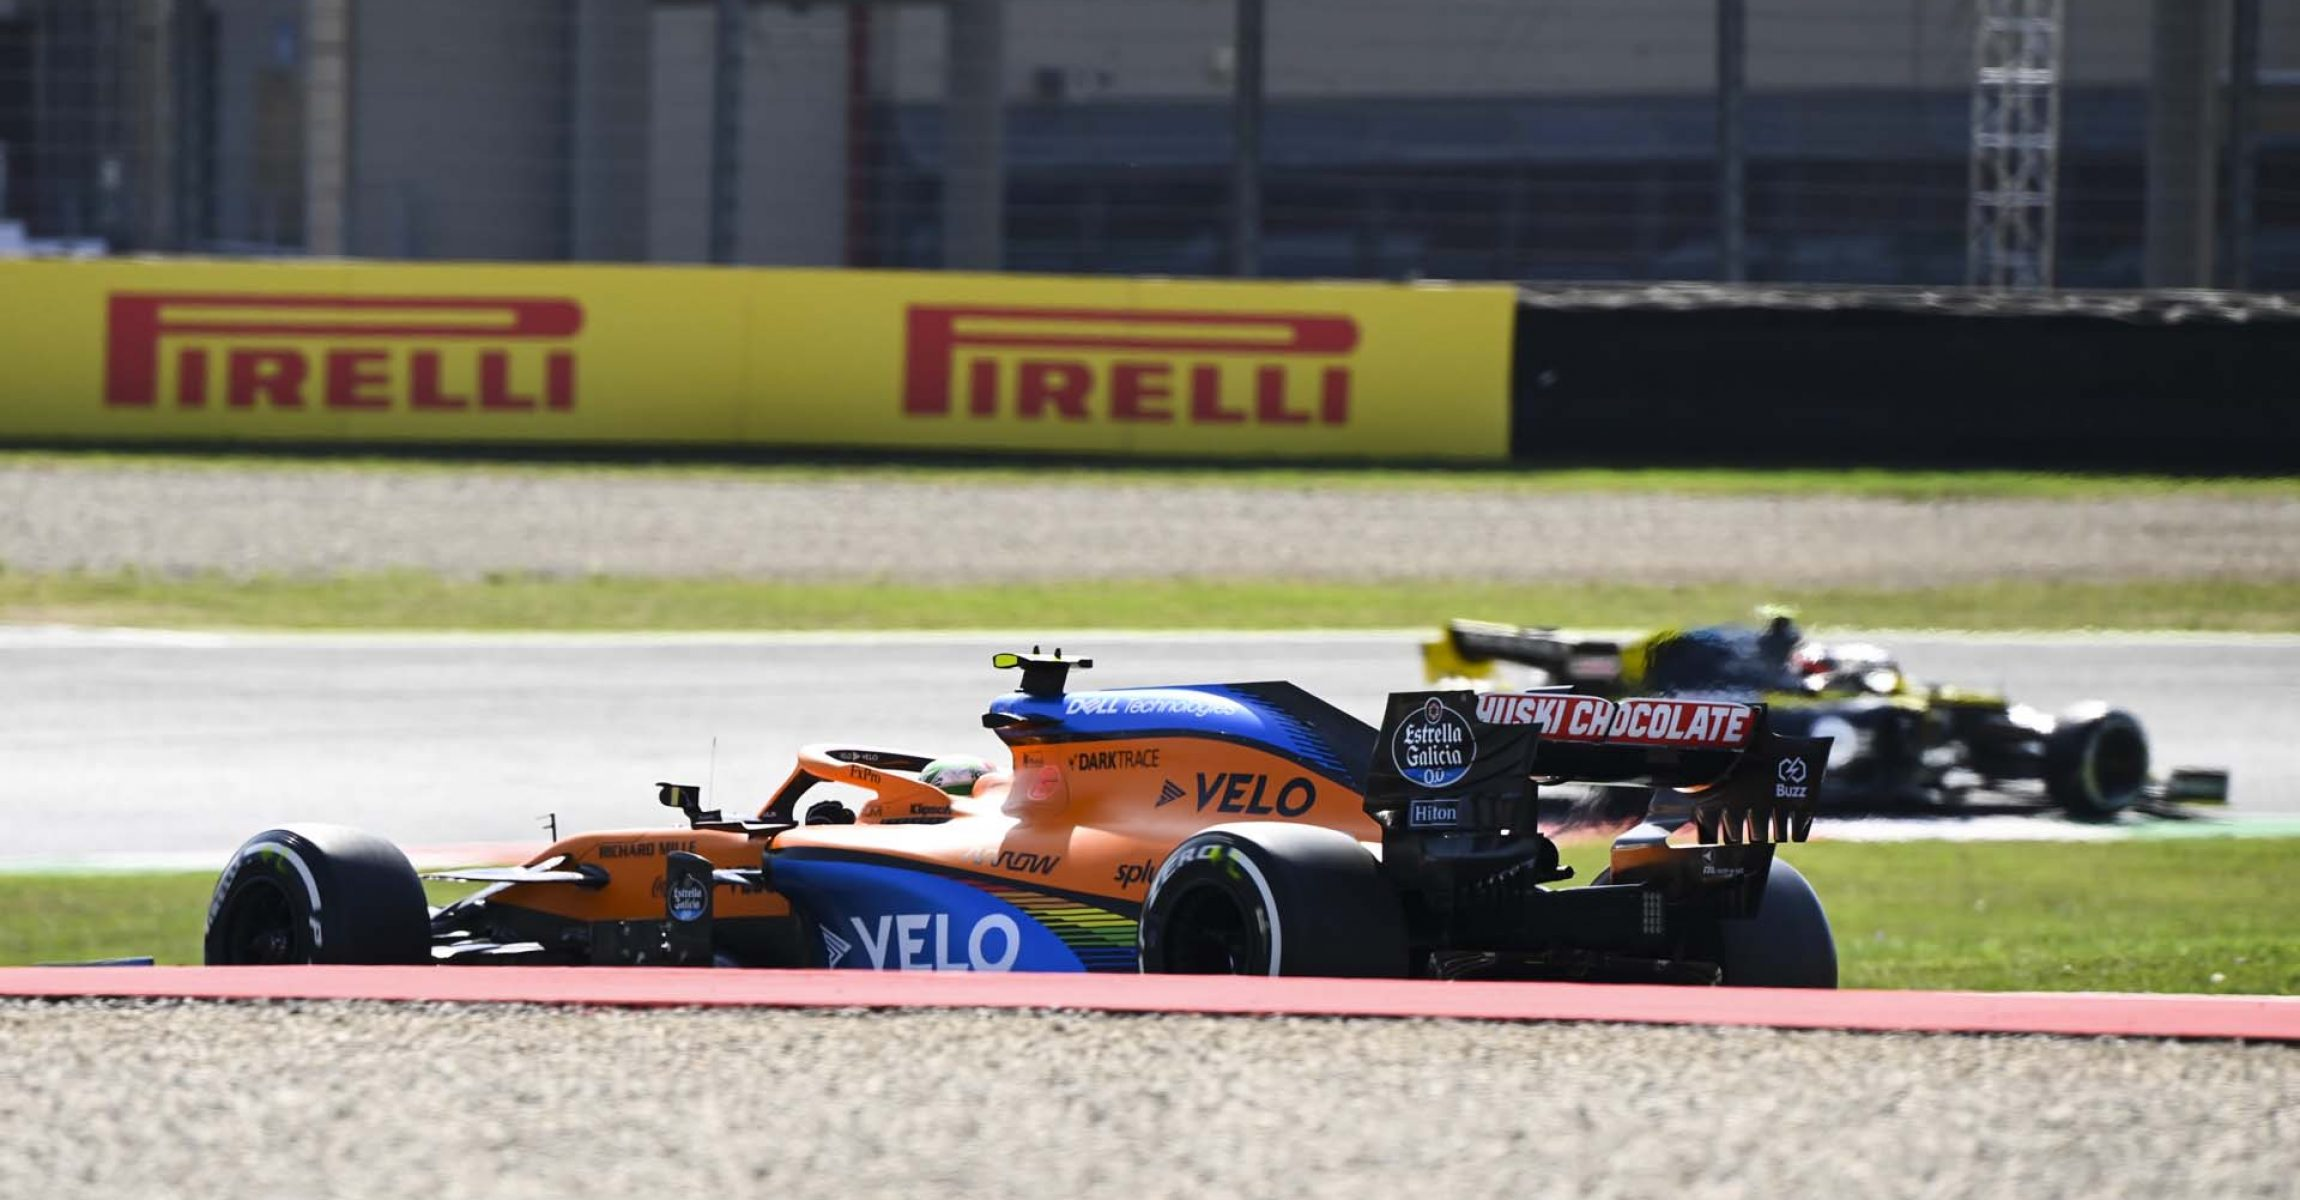 MUGELLO CIRCUIT, ITALY - SEPTEMBER 11: Lando Norris, McLaren MCL35 and Esteban Ocon, Renault R.S.20 during the Tuscany GP at Mugello Circuit on Friday September 11, 2020, Italy. (Photo by Mark Sutton / LAT Images)